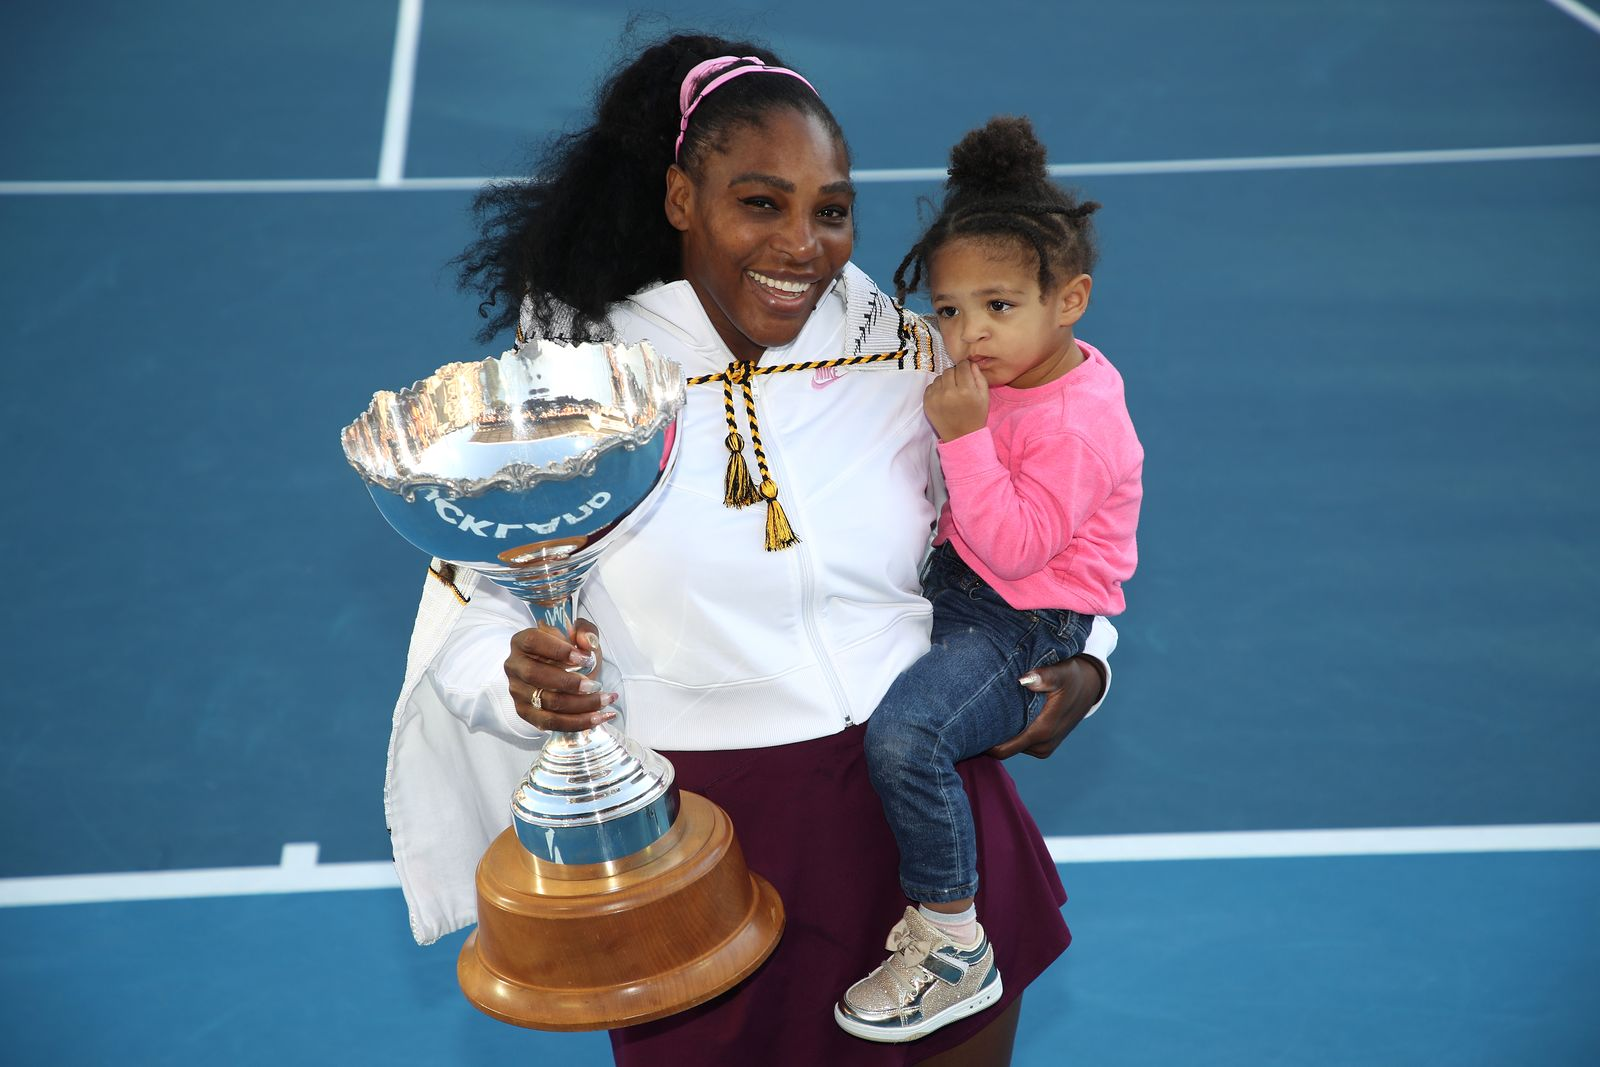 Serena Williams holds daughter Alexis Olympia and her trophy following the Women's Final at the 2020 Women's ASB Classic on January 12, 2020. | Photo: Getty Images